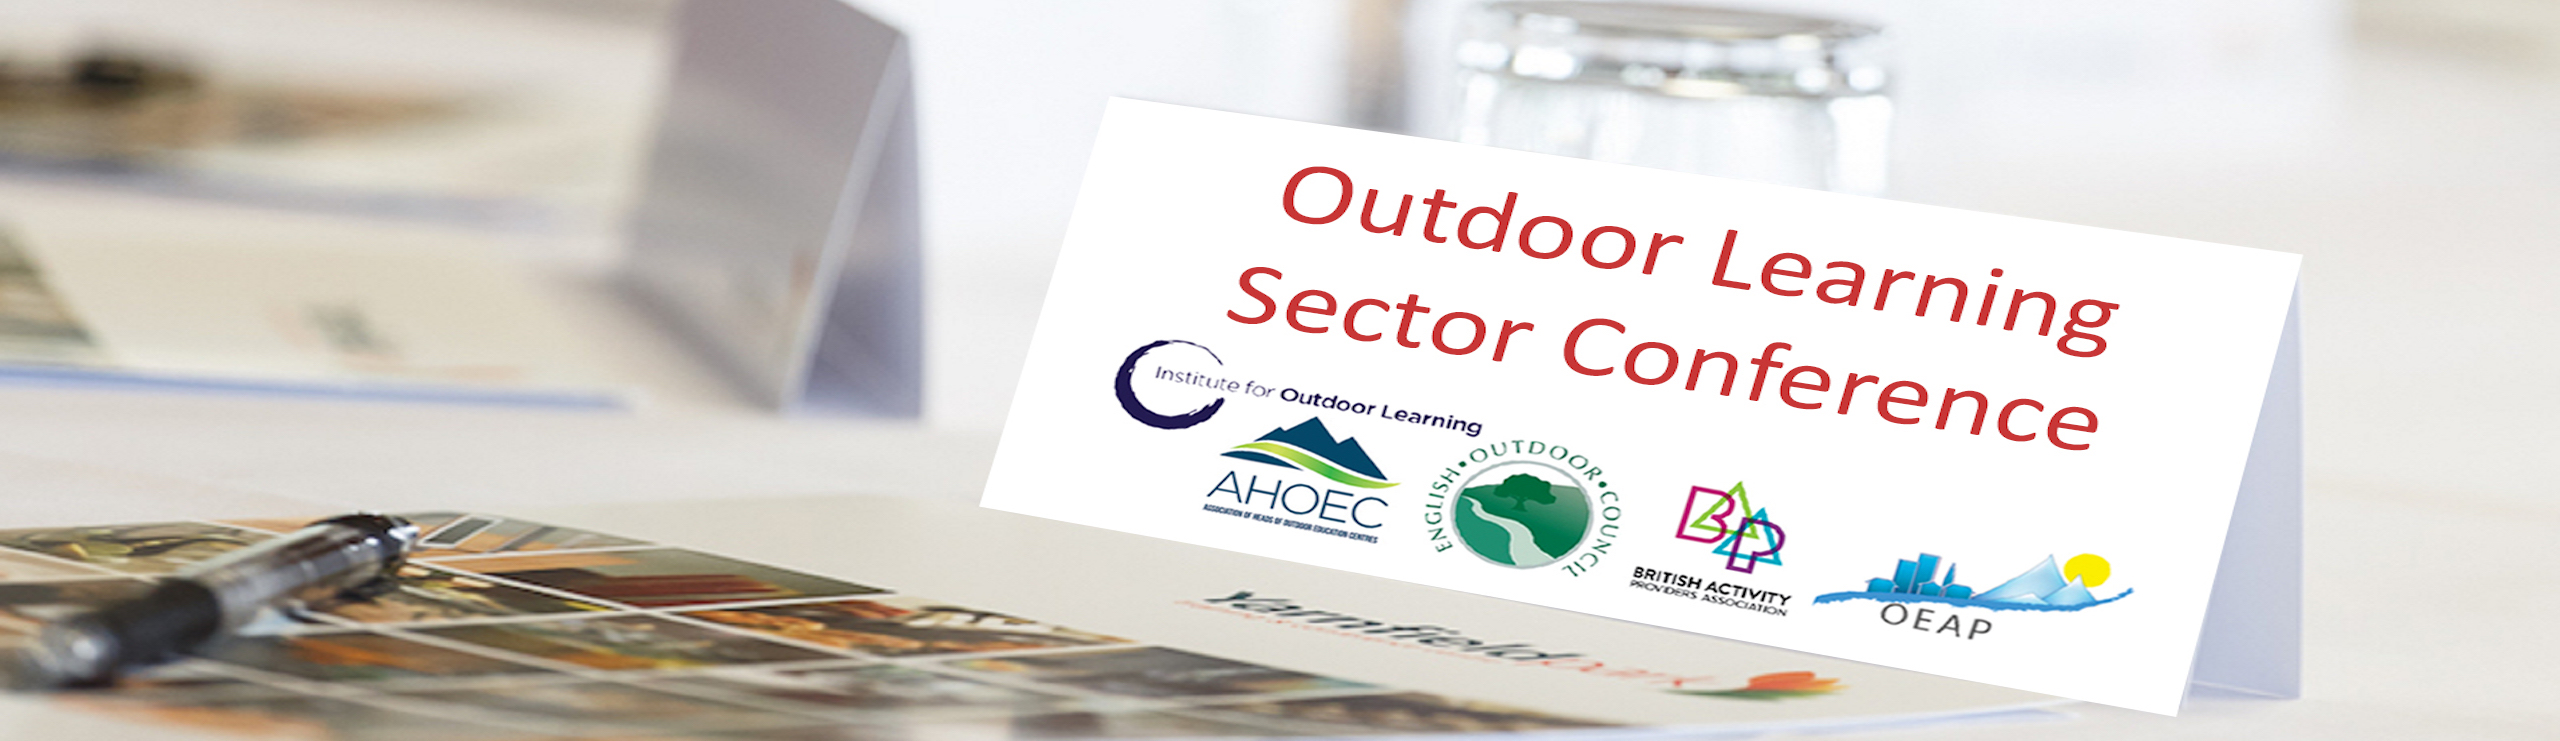 Outdoor Learning Sector Conference